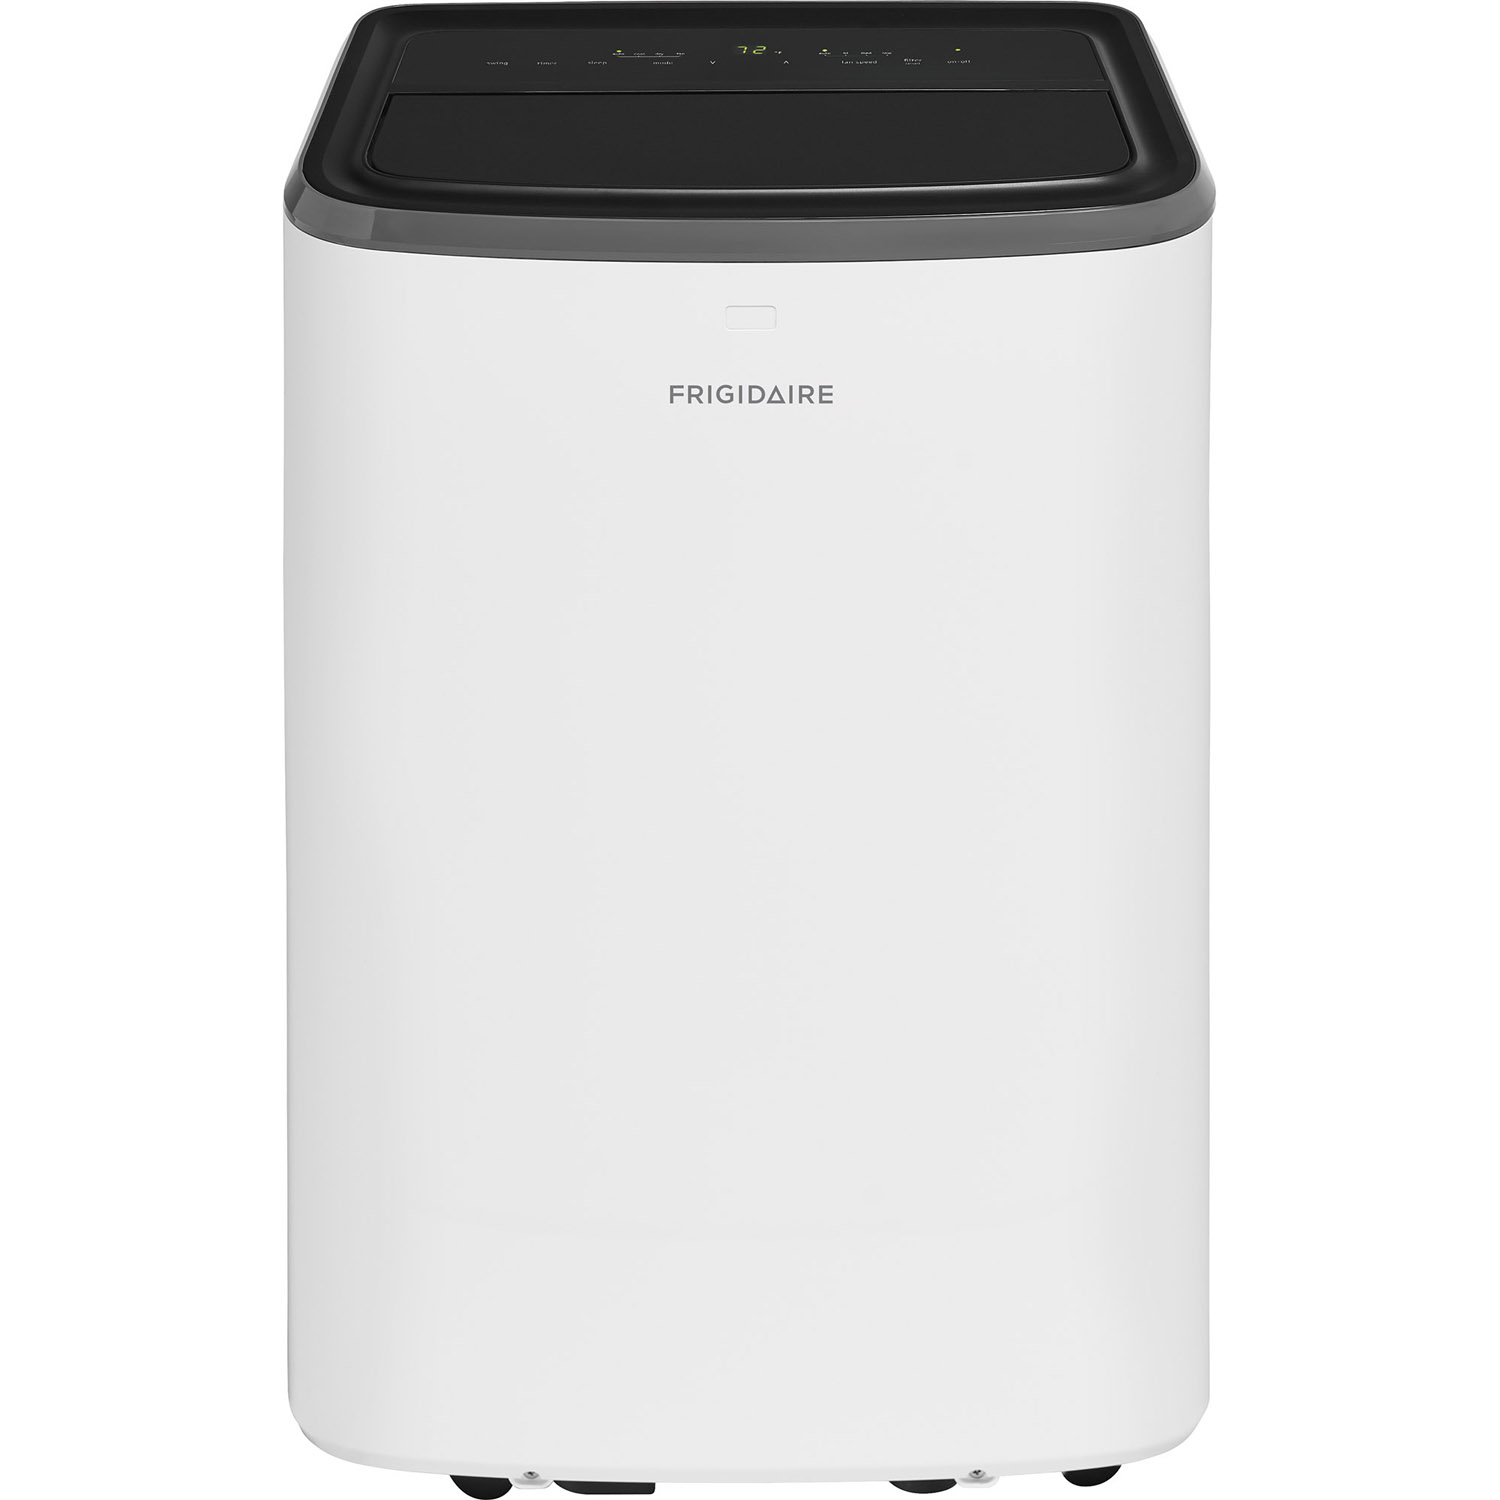 Frigidaire Home Comfort 8,000 BTU 11.4 EER 115V White Portable Air Conditioner